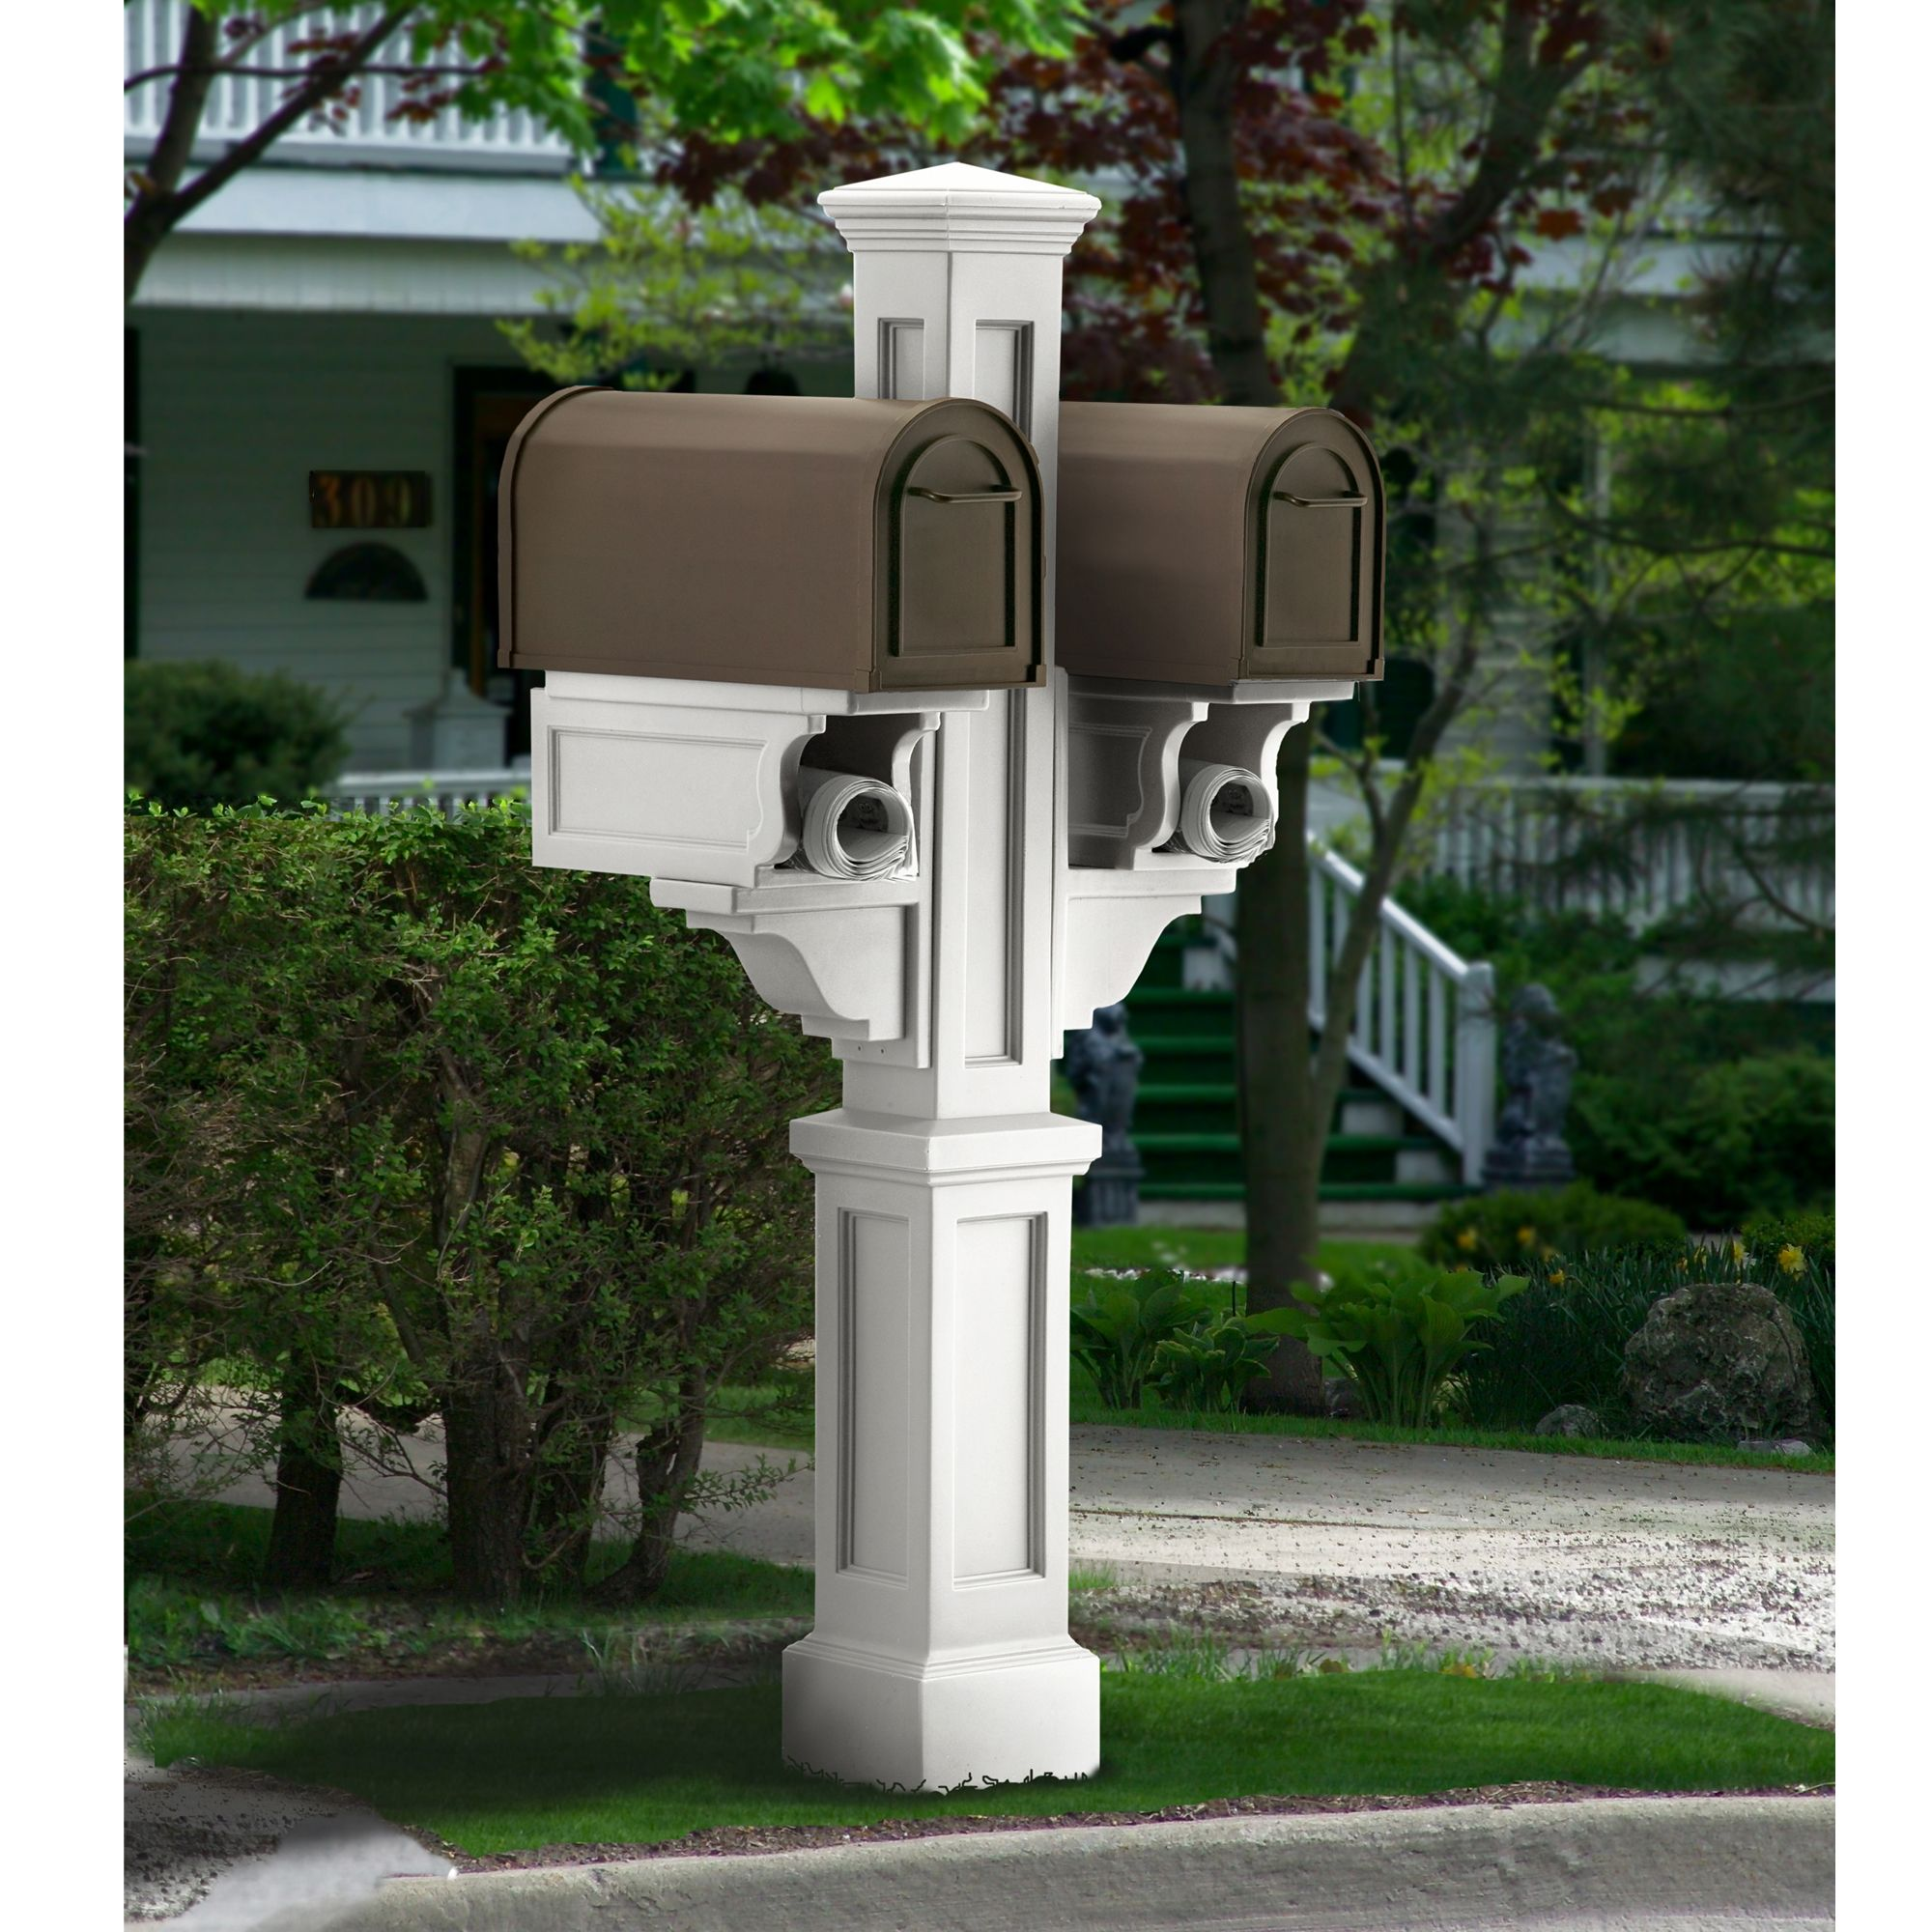 victorian betterbyboss an andrew error occurred upgrades pedestal with mailbox mailboss